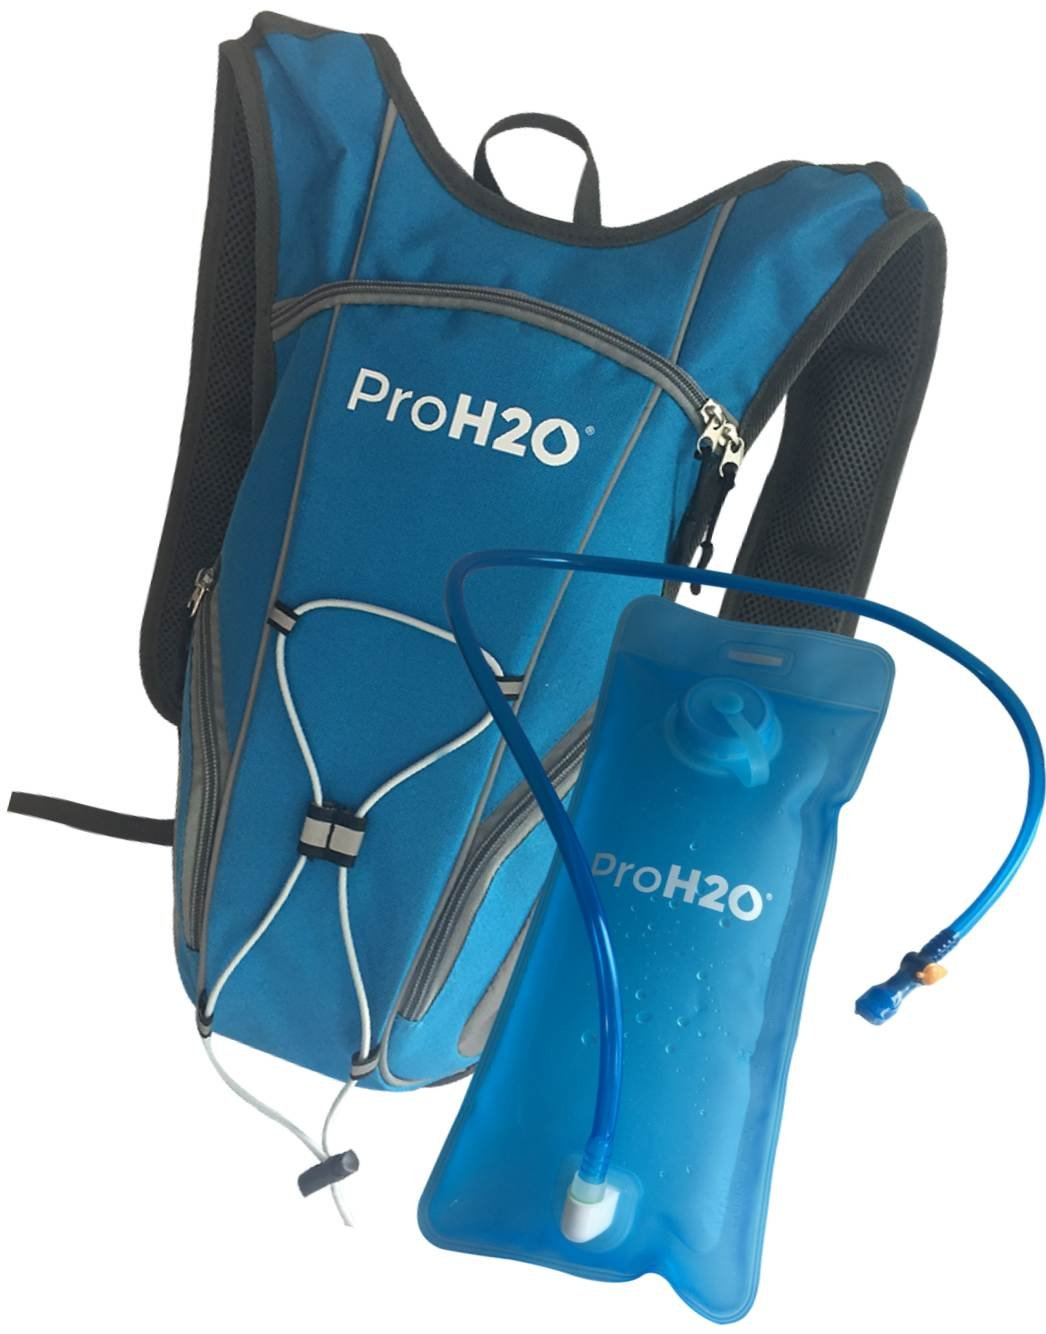 ProH2O Hydration Backpack for Running, Hiking, Cycling - Ergonomic Design Molds to Your Back and Provides Hydrating Liquids for Outdoor Activities | Easy to Use Bite Valve, Non Leak Bladder